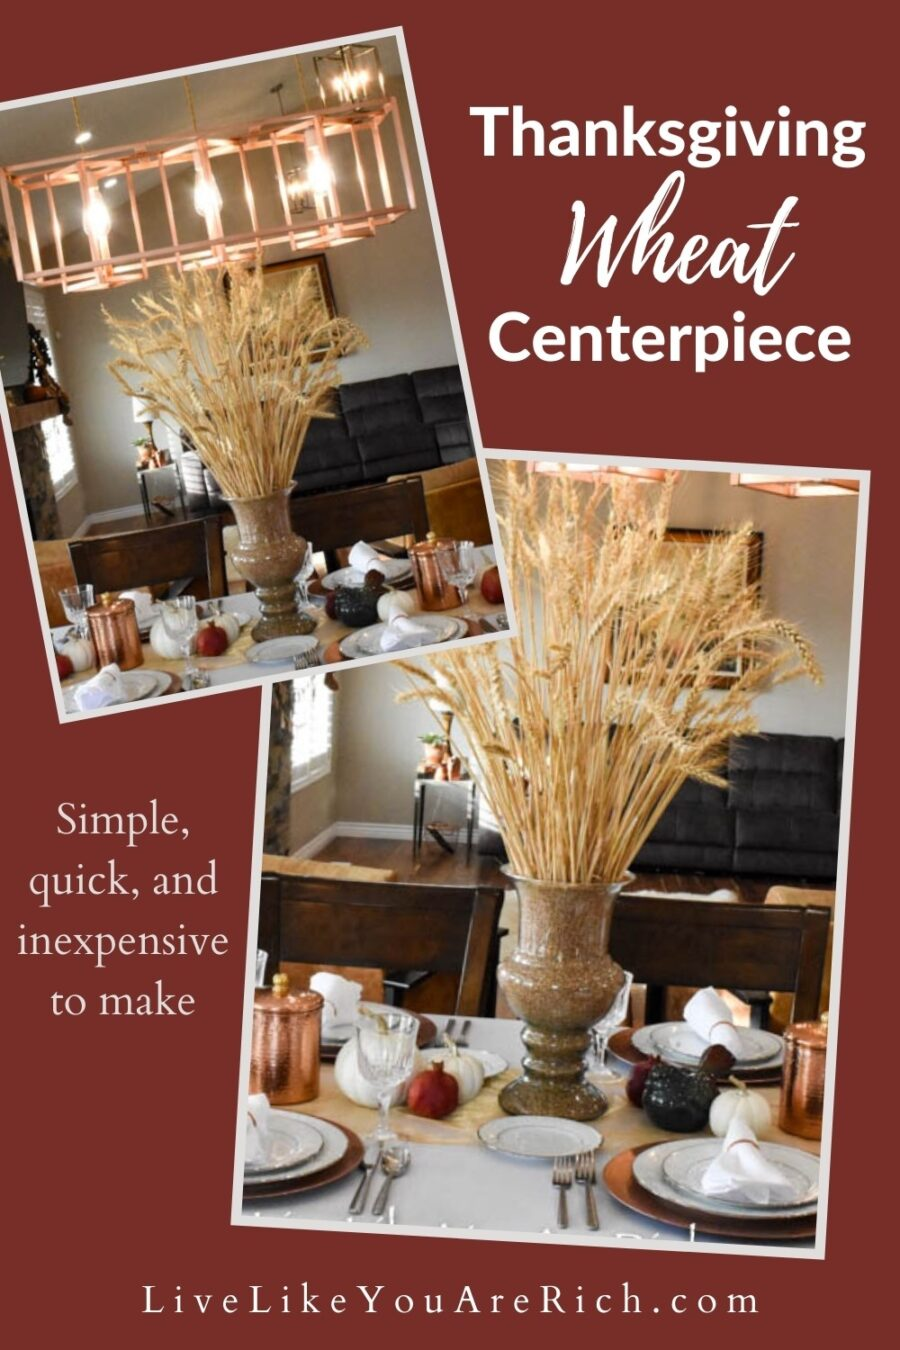 This is a very simple, quick, and inexpensive Thanksgiving Wheat Centerpiece that is affordable, and fun to decorate with. I hope it turns out well for you too. #thanksgiving #thanksgivingwreath